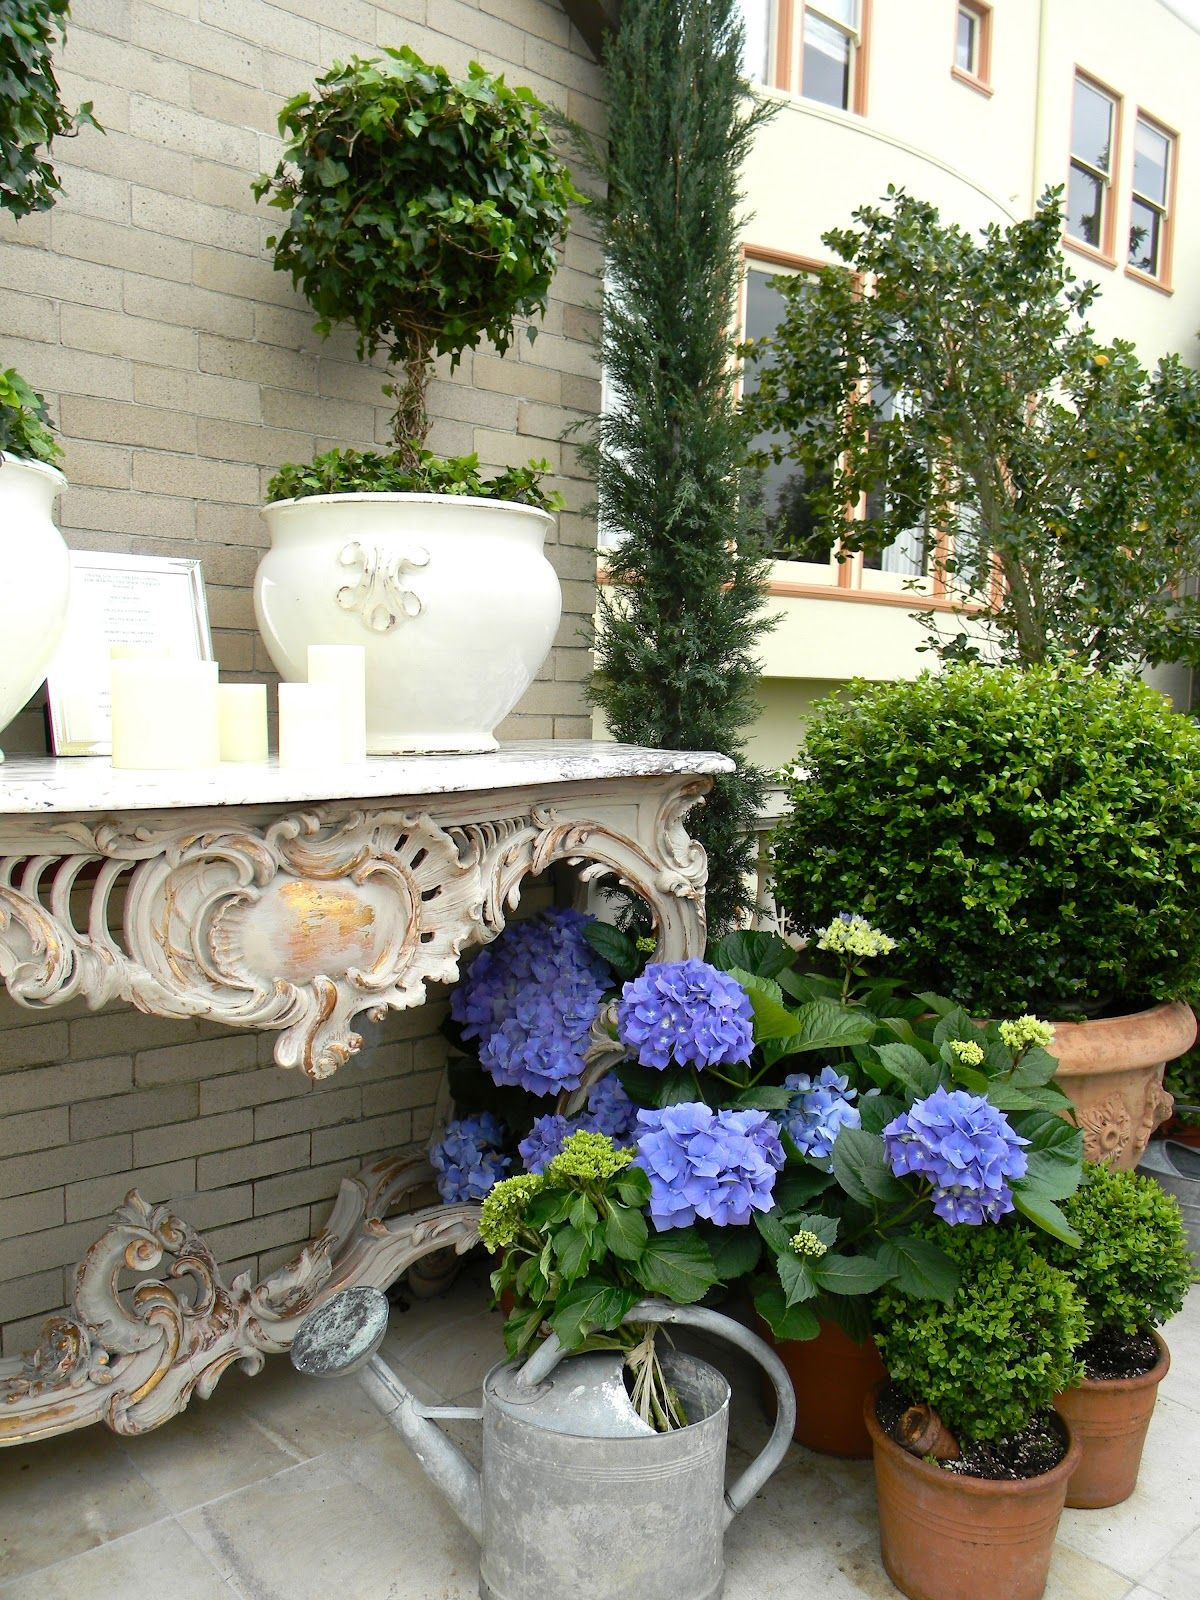 Katiedid Curiouser And Curiouser The San Francisco: Ivy Topiary On A Beautiful Table And Potted Hydrangeas